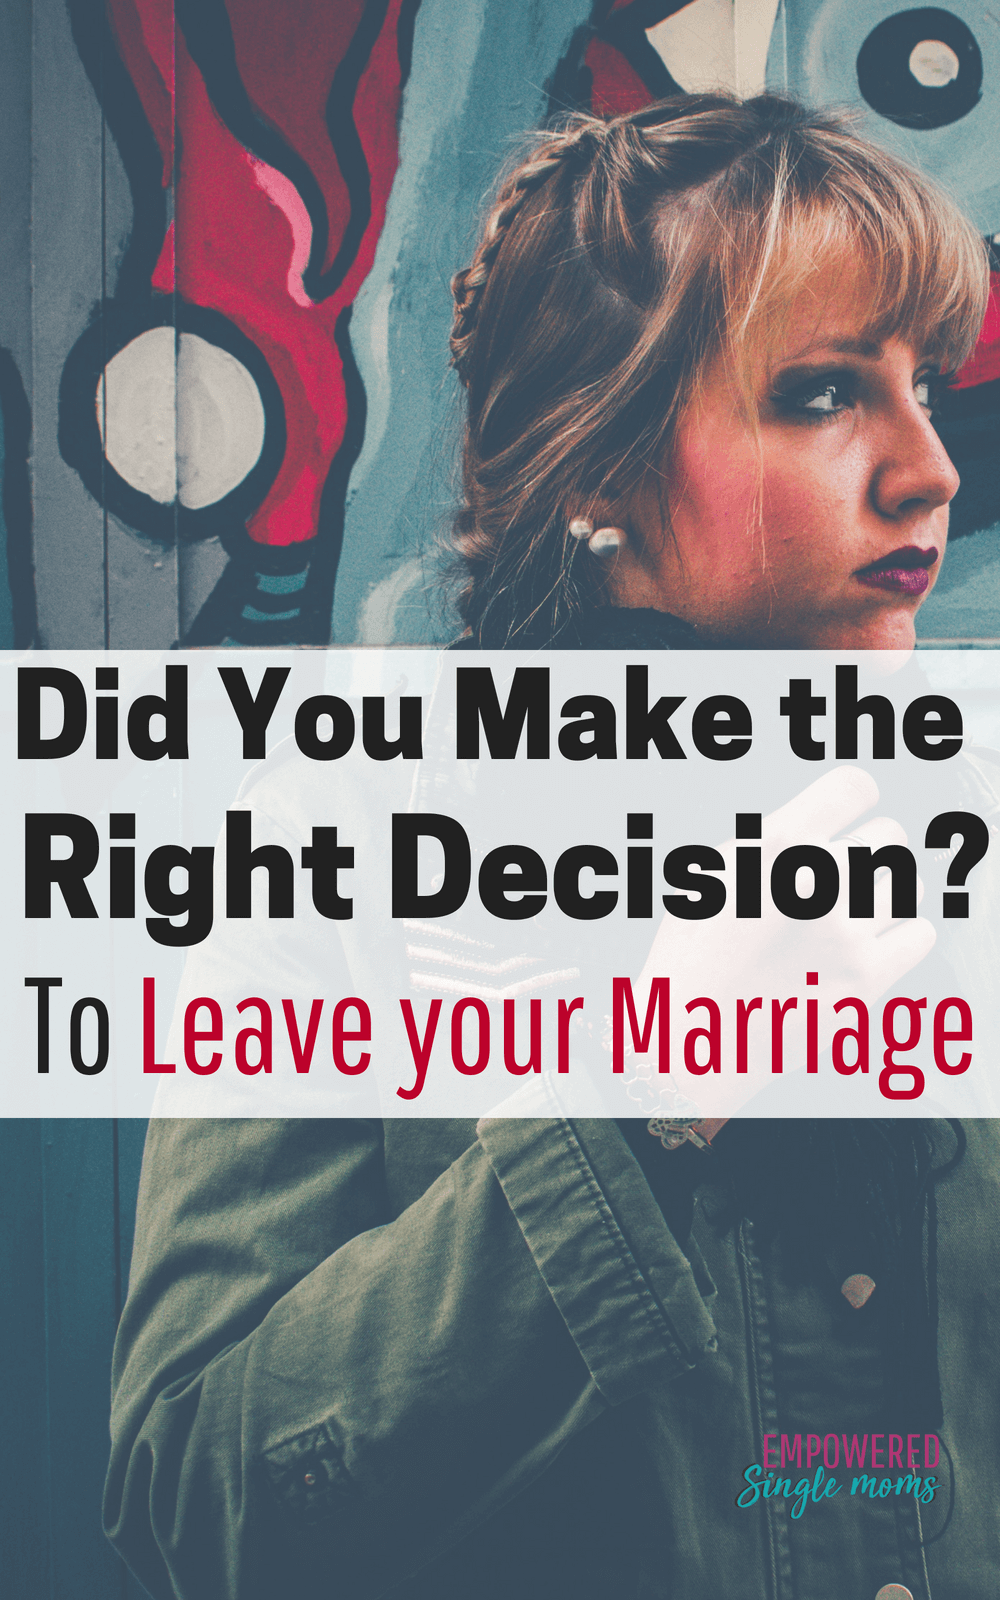 10 Reasons to Get Divorced There are times when divorce is the est decision. #singlemom #divorce